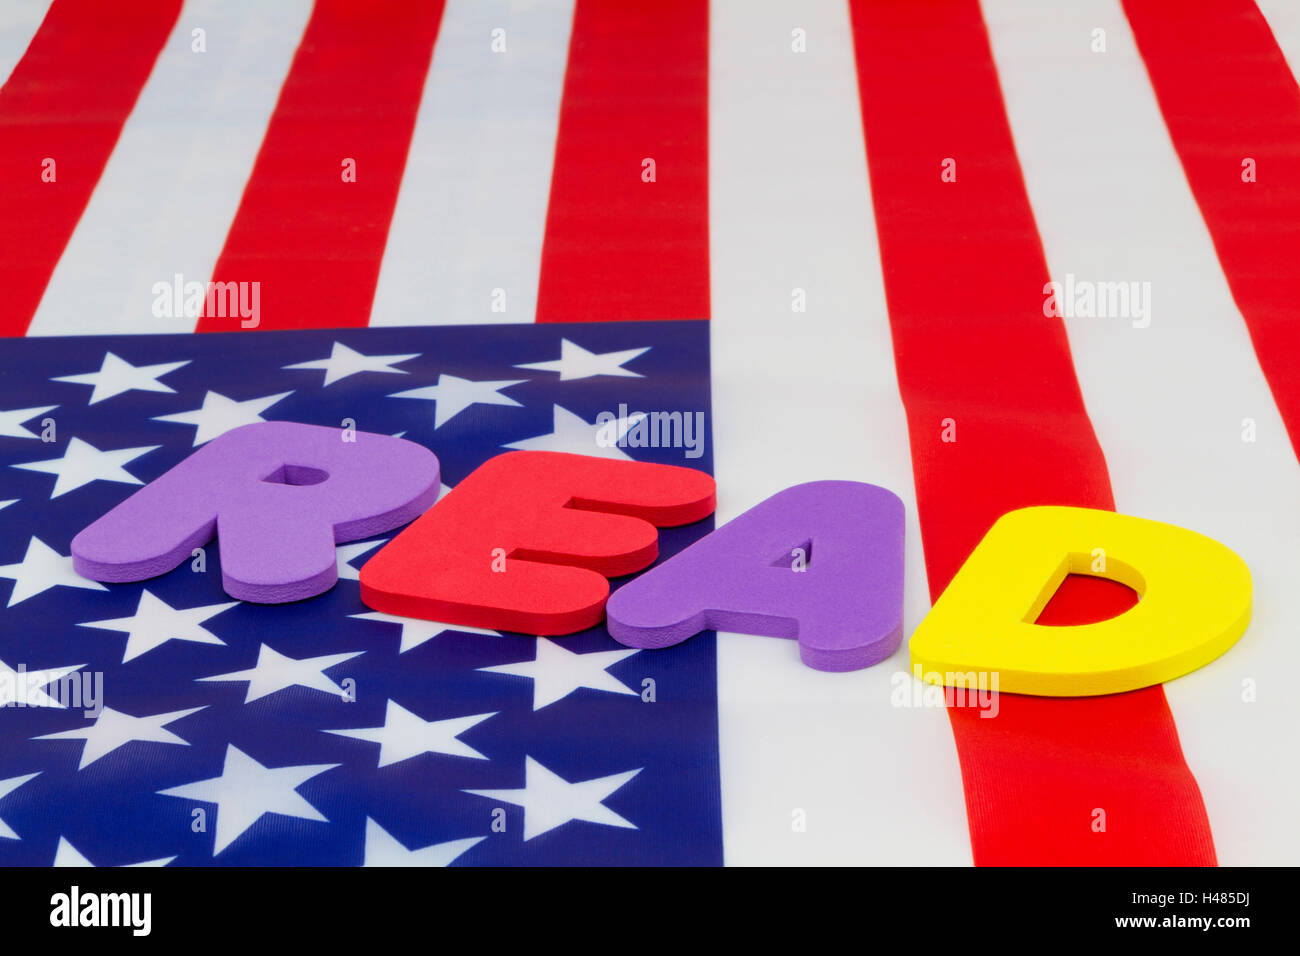 READ word on American flag emphasizes national education policy highlighting literacy and accountability. - Stock Image